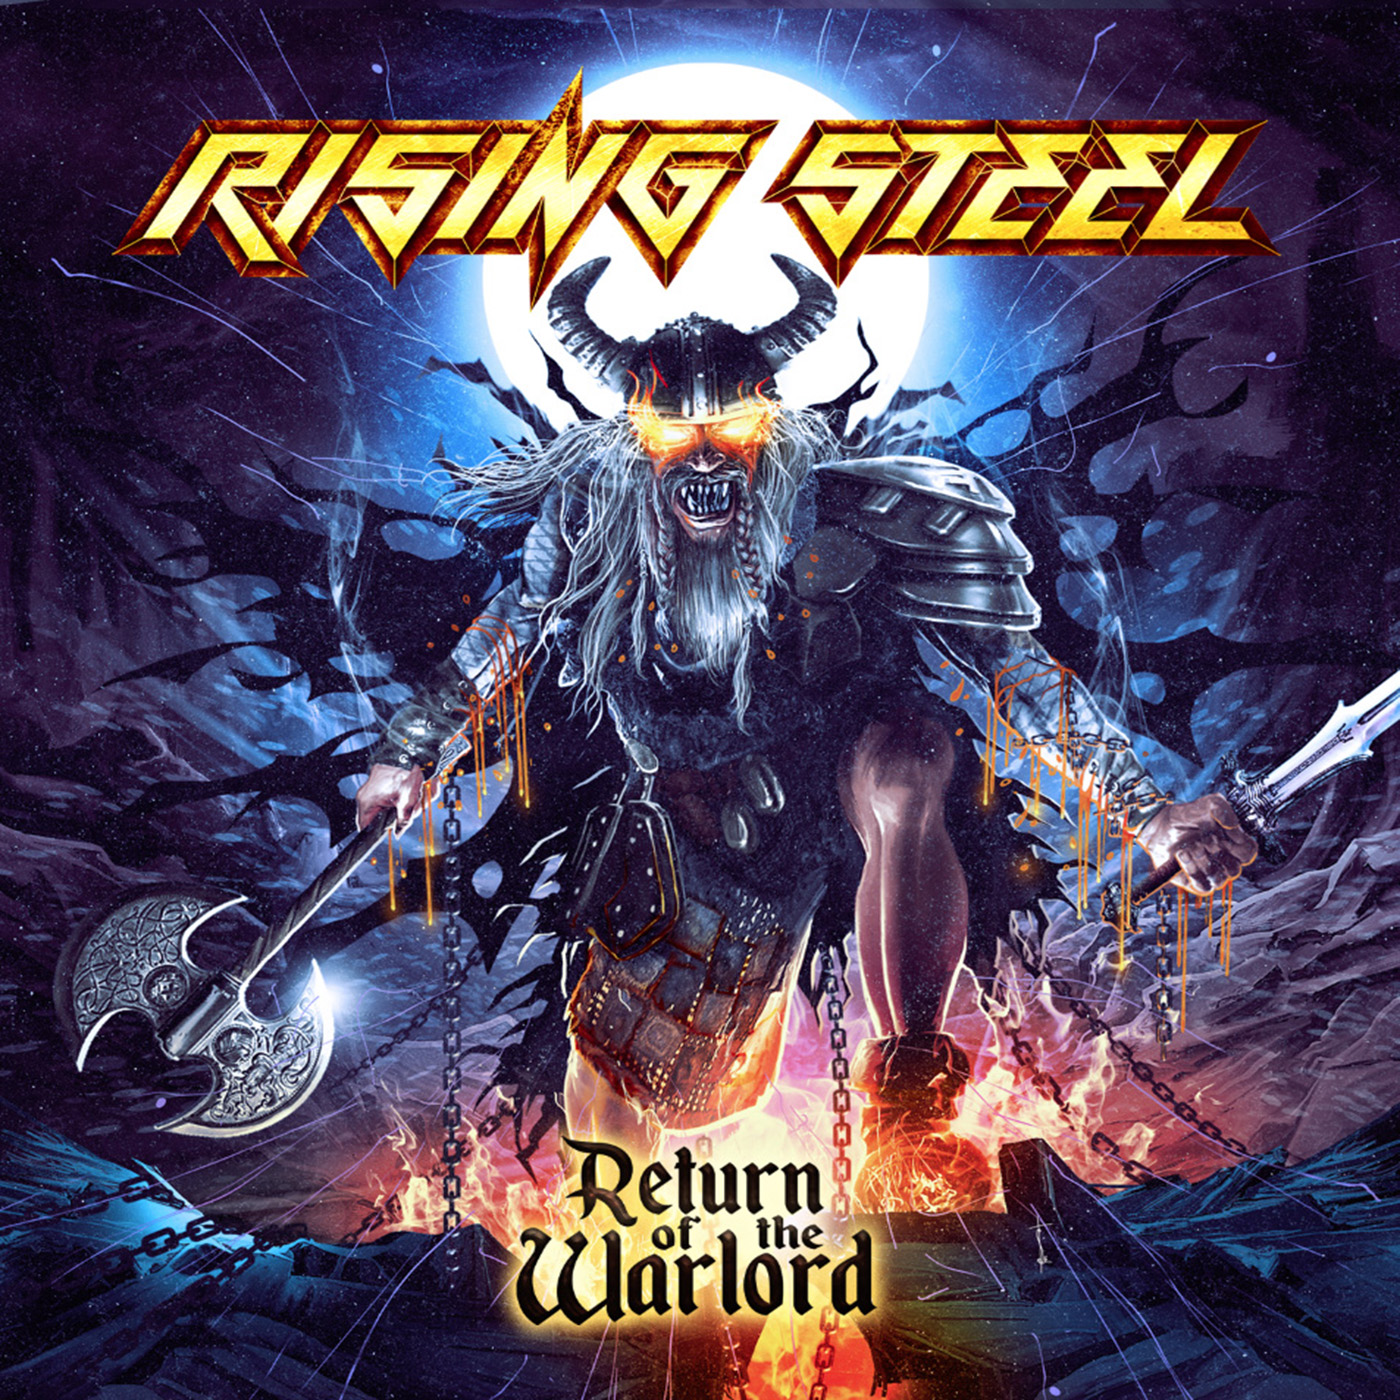 Rising Steel – Return of the Warlord